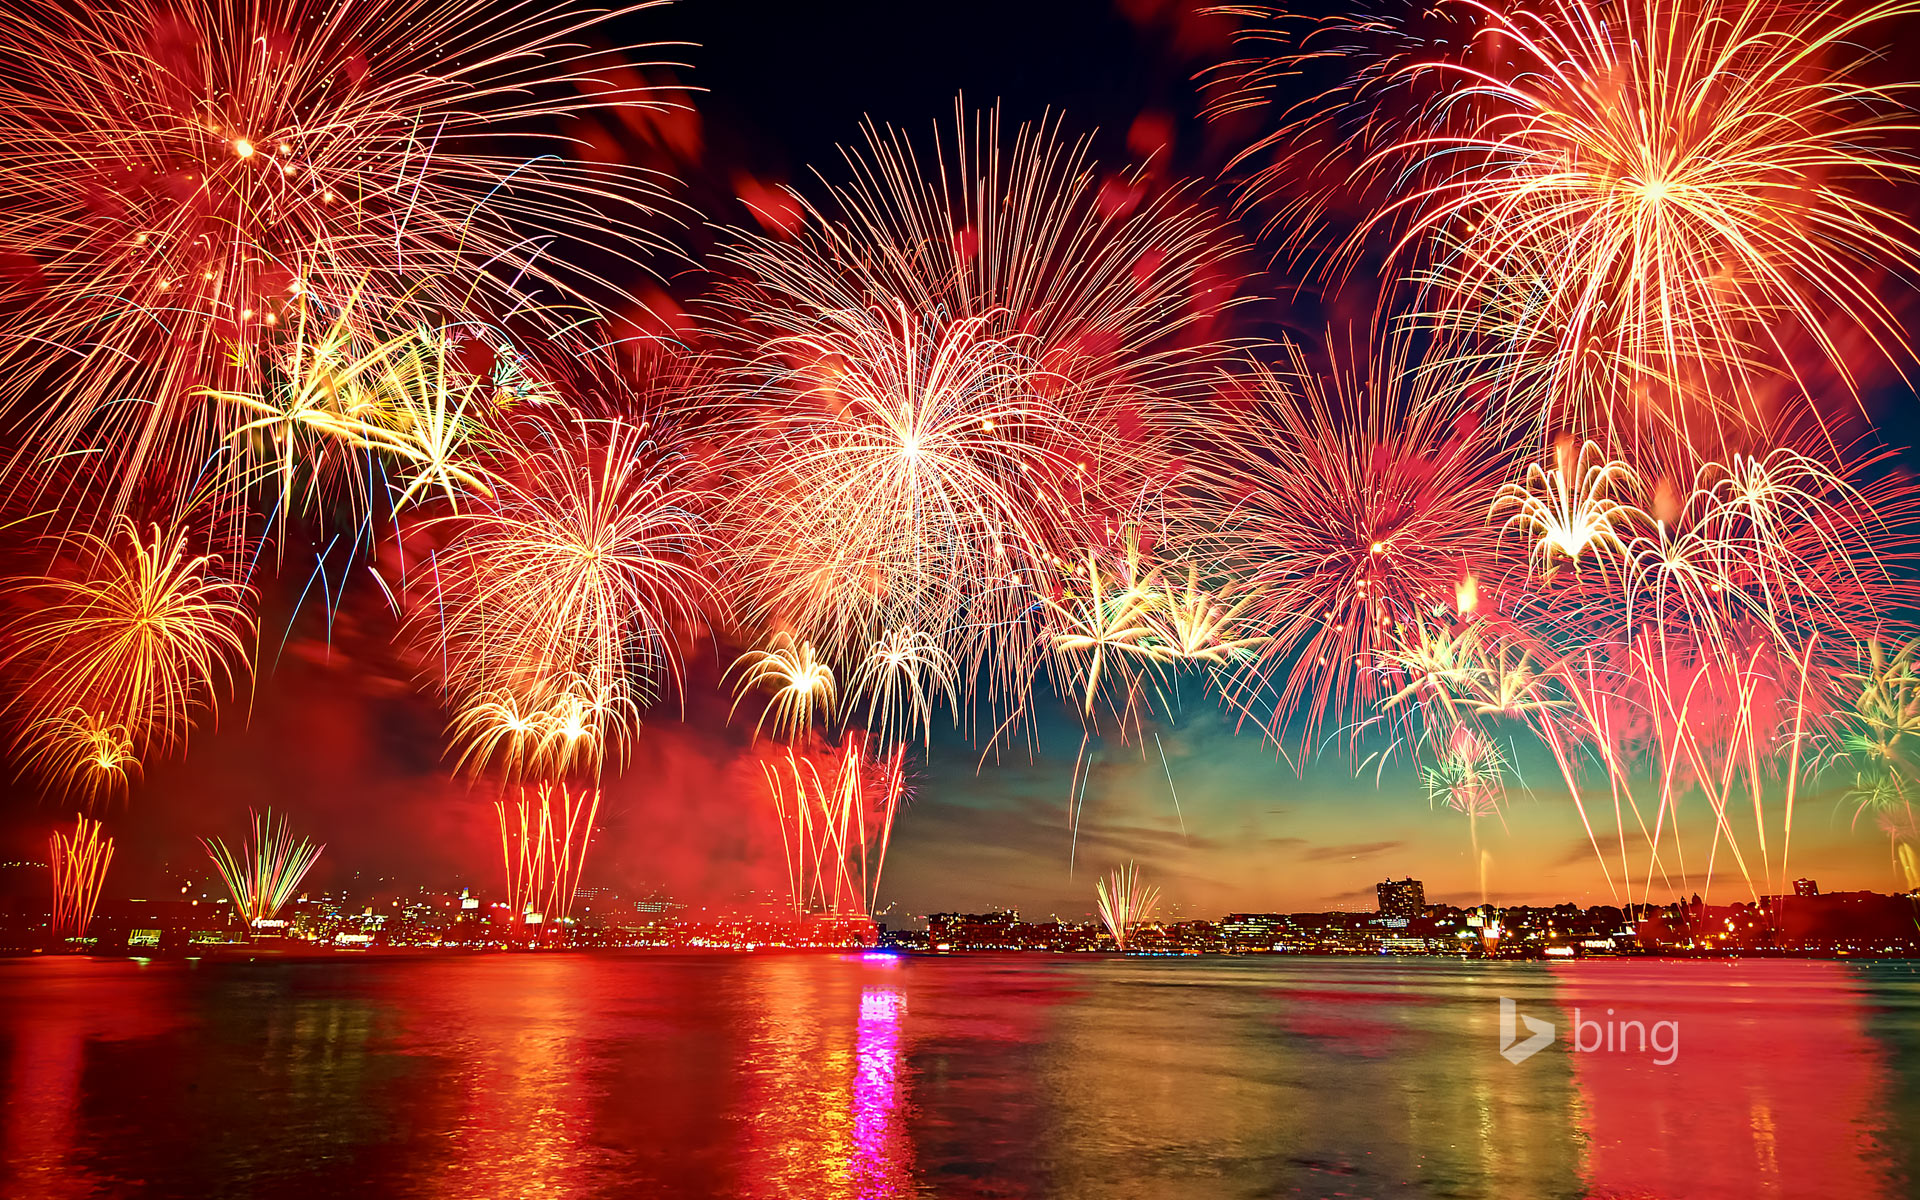 Fireworks display in New York City as seen over the Hudson River from Hoboken, New Jersey